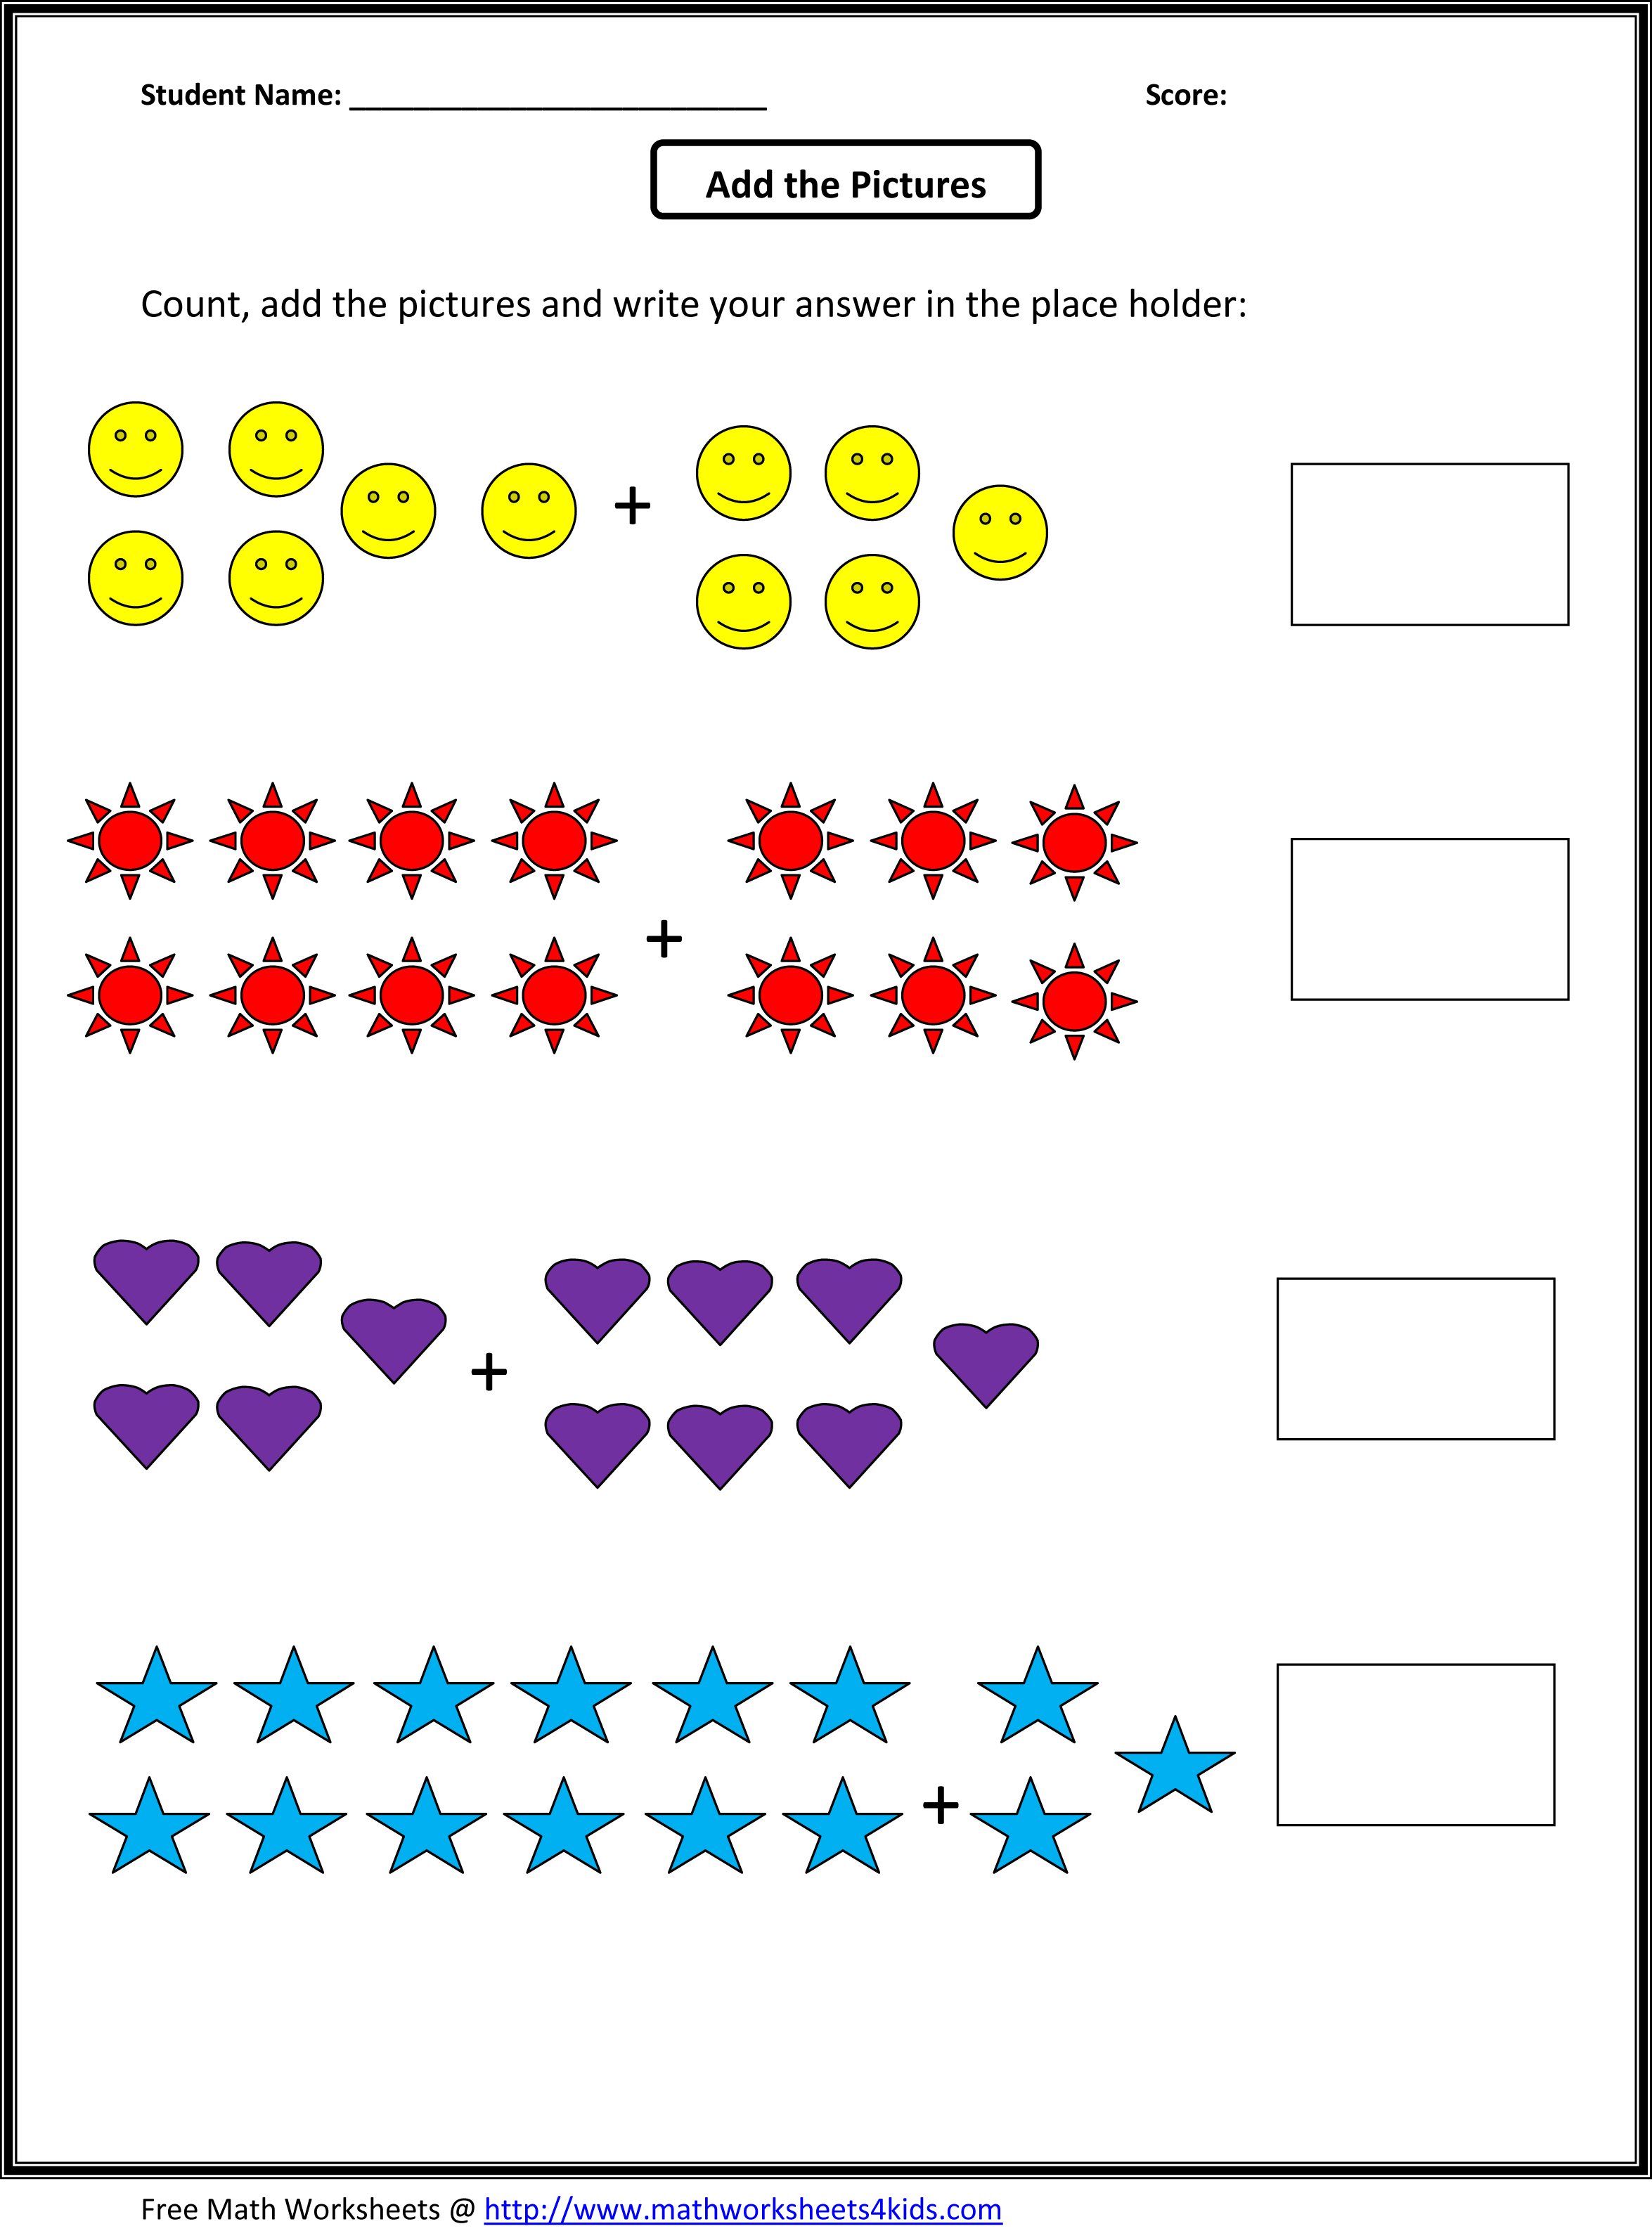 Weirdmailus  Splendid Grade  Maths Worksheet  Reocurent With Outstanding Math Worksheets For St Grade Free  Reocurent With Agreeable Back To School Math Worksheets Also Symbolism In Literature Worksheet In Addition Fun Th Grade Worksheets And Mental Math Worksheets Grade  As Well As Noun Or Verb Worksheet Additionally Types Of Rocks Worksheets From Reocurentcom With Weirdmailus  Outstanding Grade  Maths Worksheet  Reocurent With Agreeable Math Worksheets For St Grade Free  Reocurent And Splendid Back To School Math Worksheets Also Symbolism In Literature Worksheet In Addition Fun Th Grade Worksheets From Reocurentcom